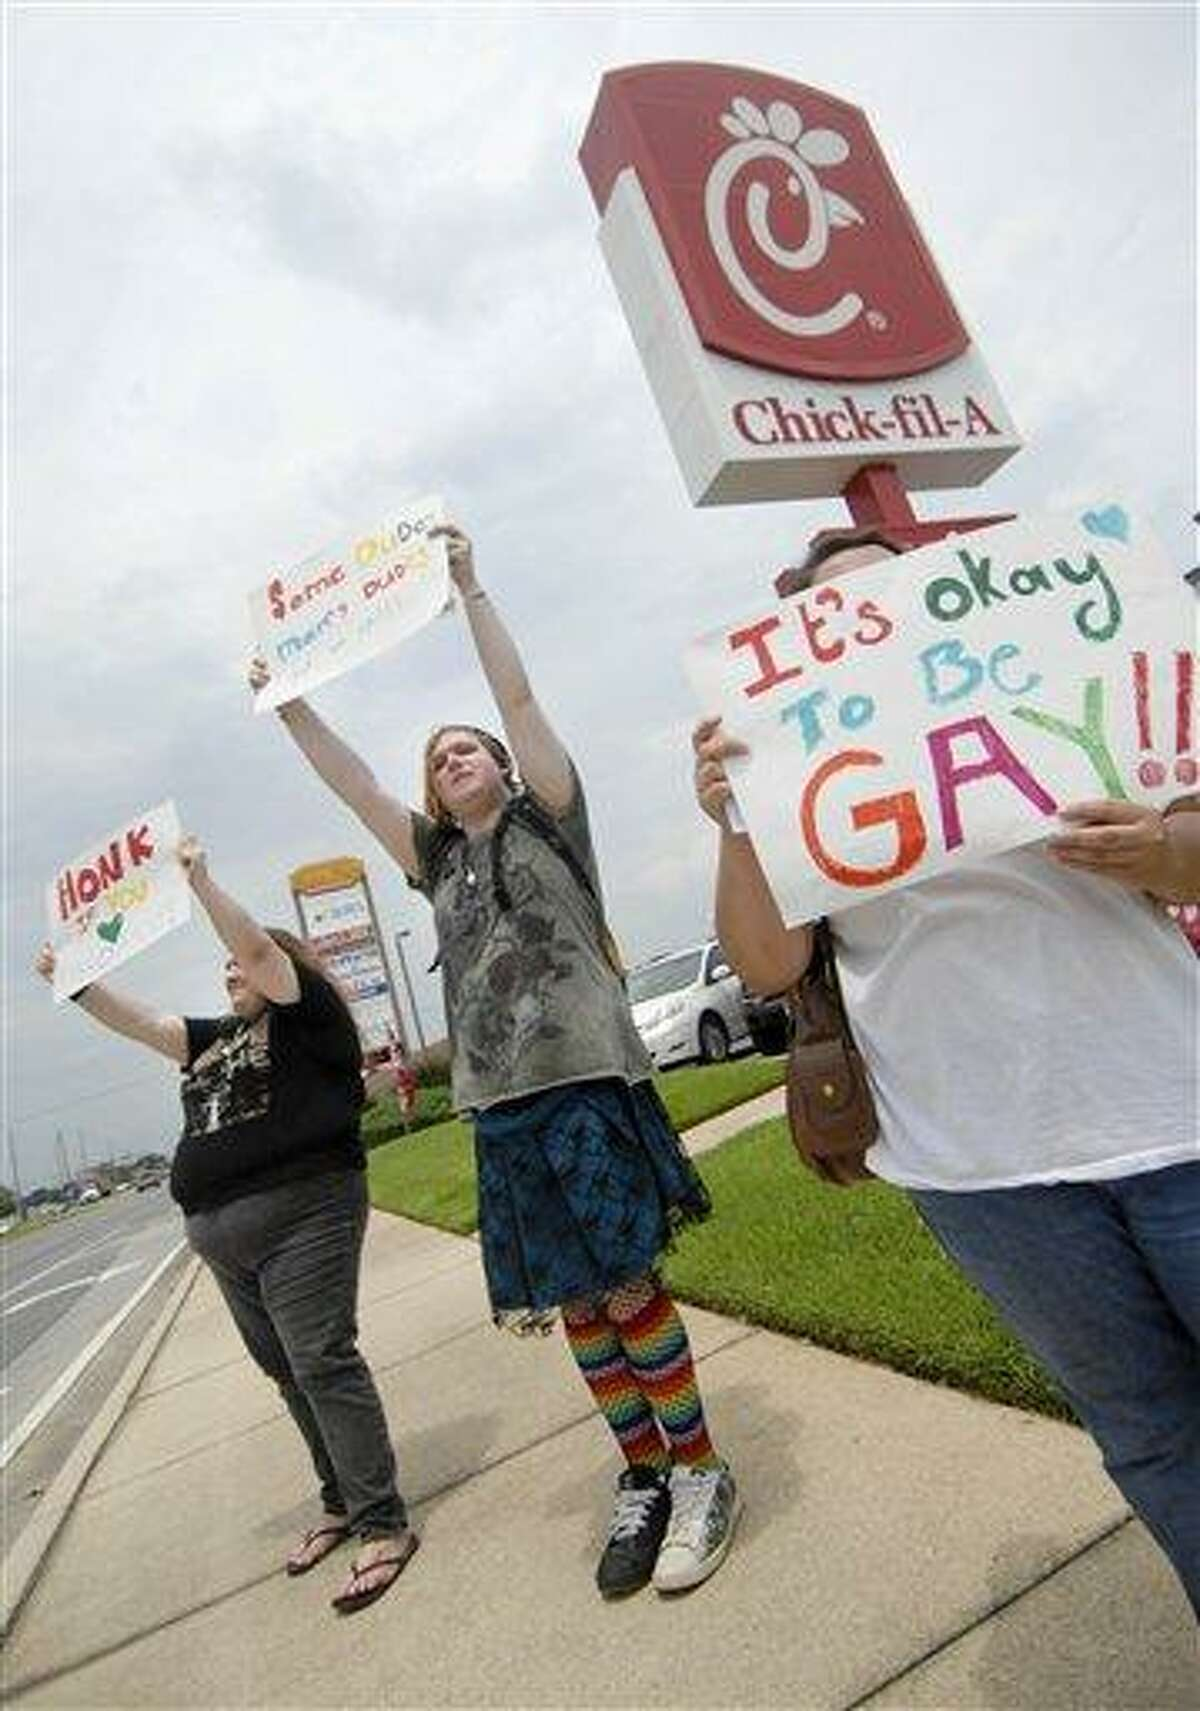 Gay marriage supporters, from left, Emmie Hesley, Cathy Dear and Amy Paffenroth hold signs in front of a Chick-fil-A in Fort Walton Beach, Fla., Thursday in protest of the chicken eatery's stance on gay marriage. (AP Photo/Northwest Florida Daily News, Nick Tomecek)